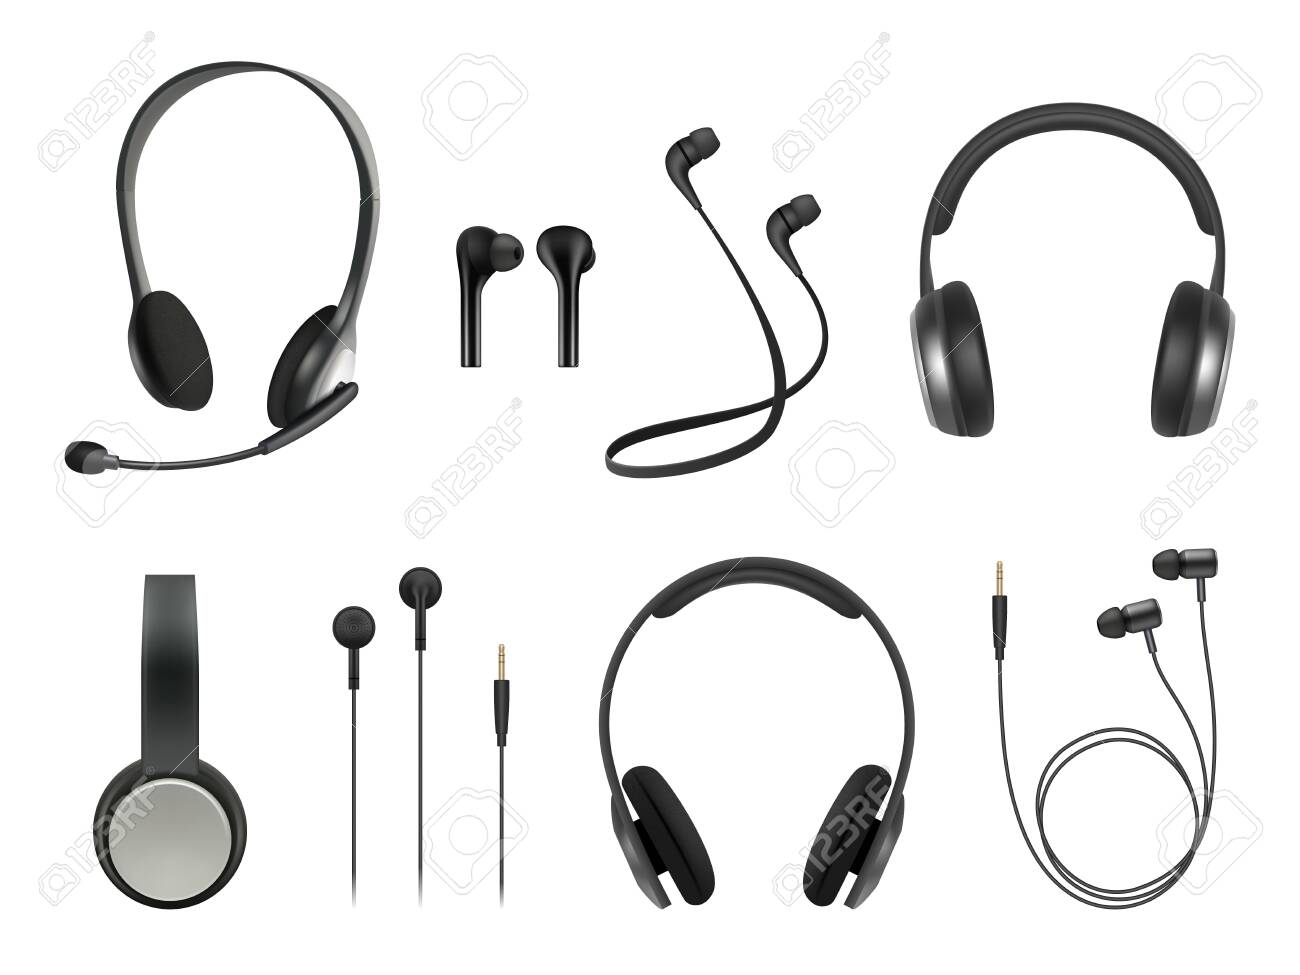 Headset realistic. Earbuds music modern equipment wireless headset vector collection. Illustration headset accessory, realistic equipment headphone with microphone - 130035680